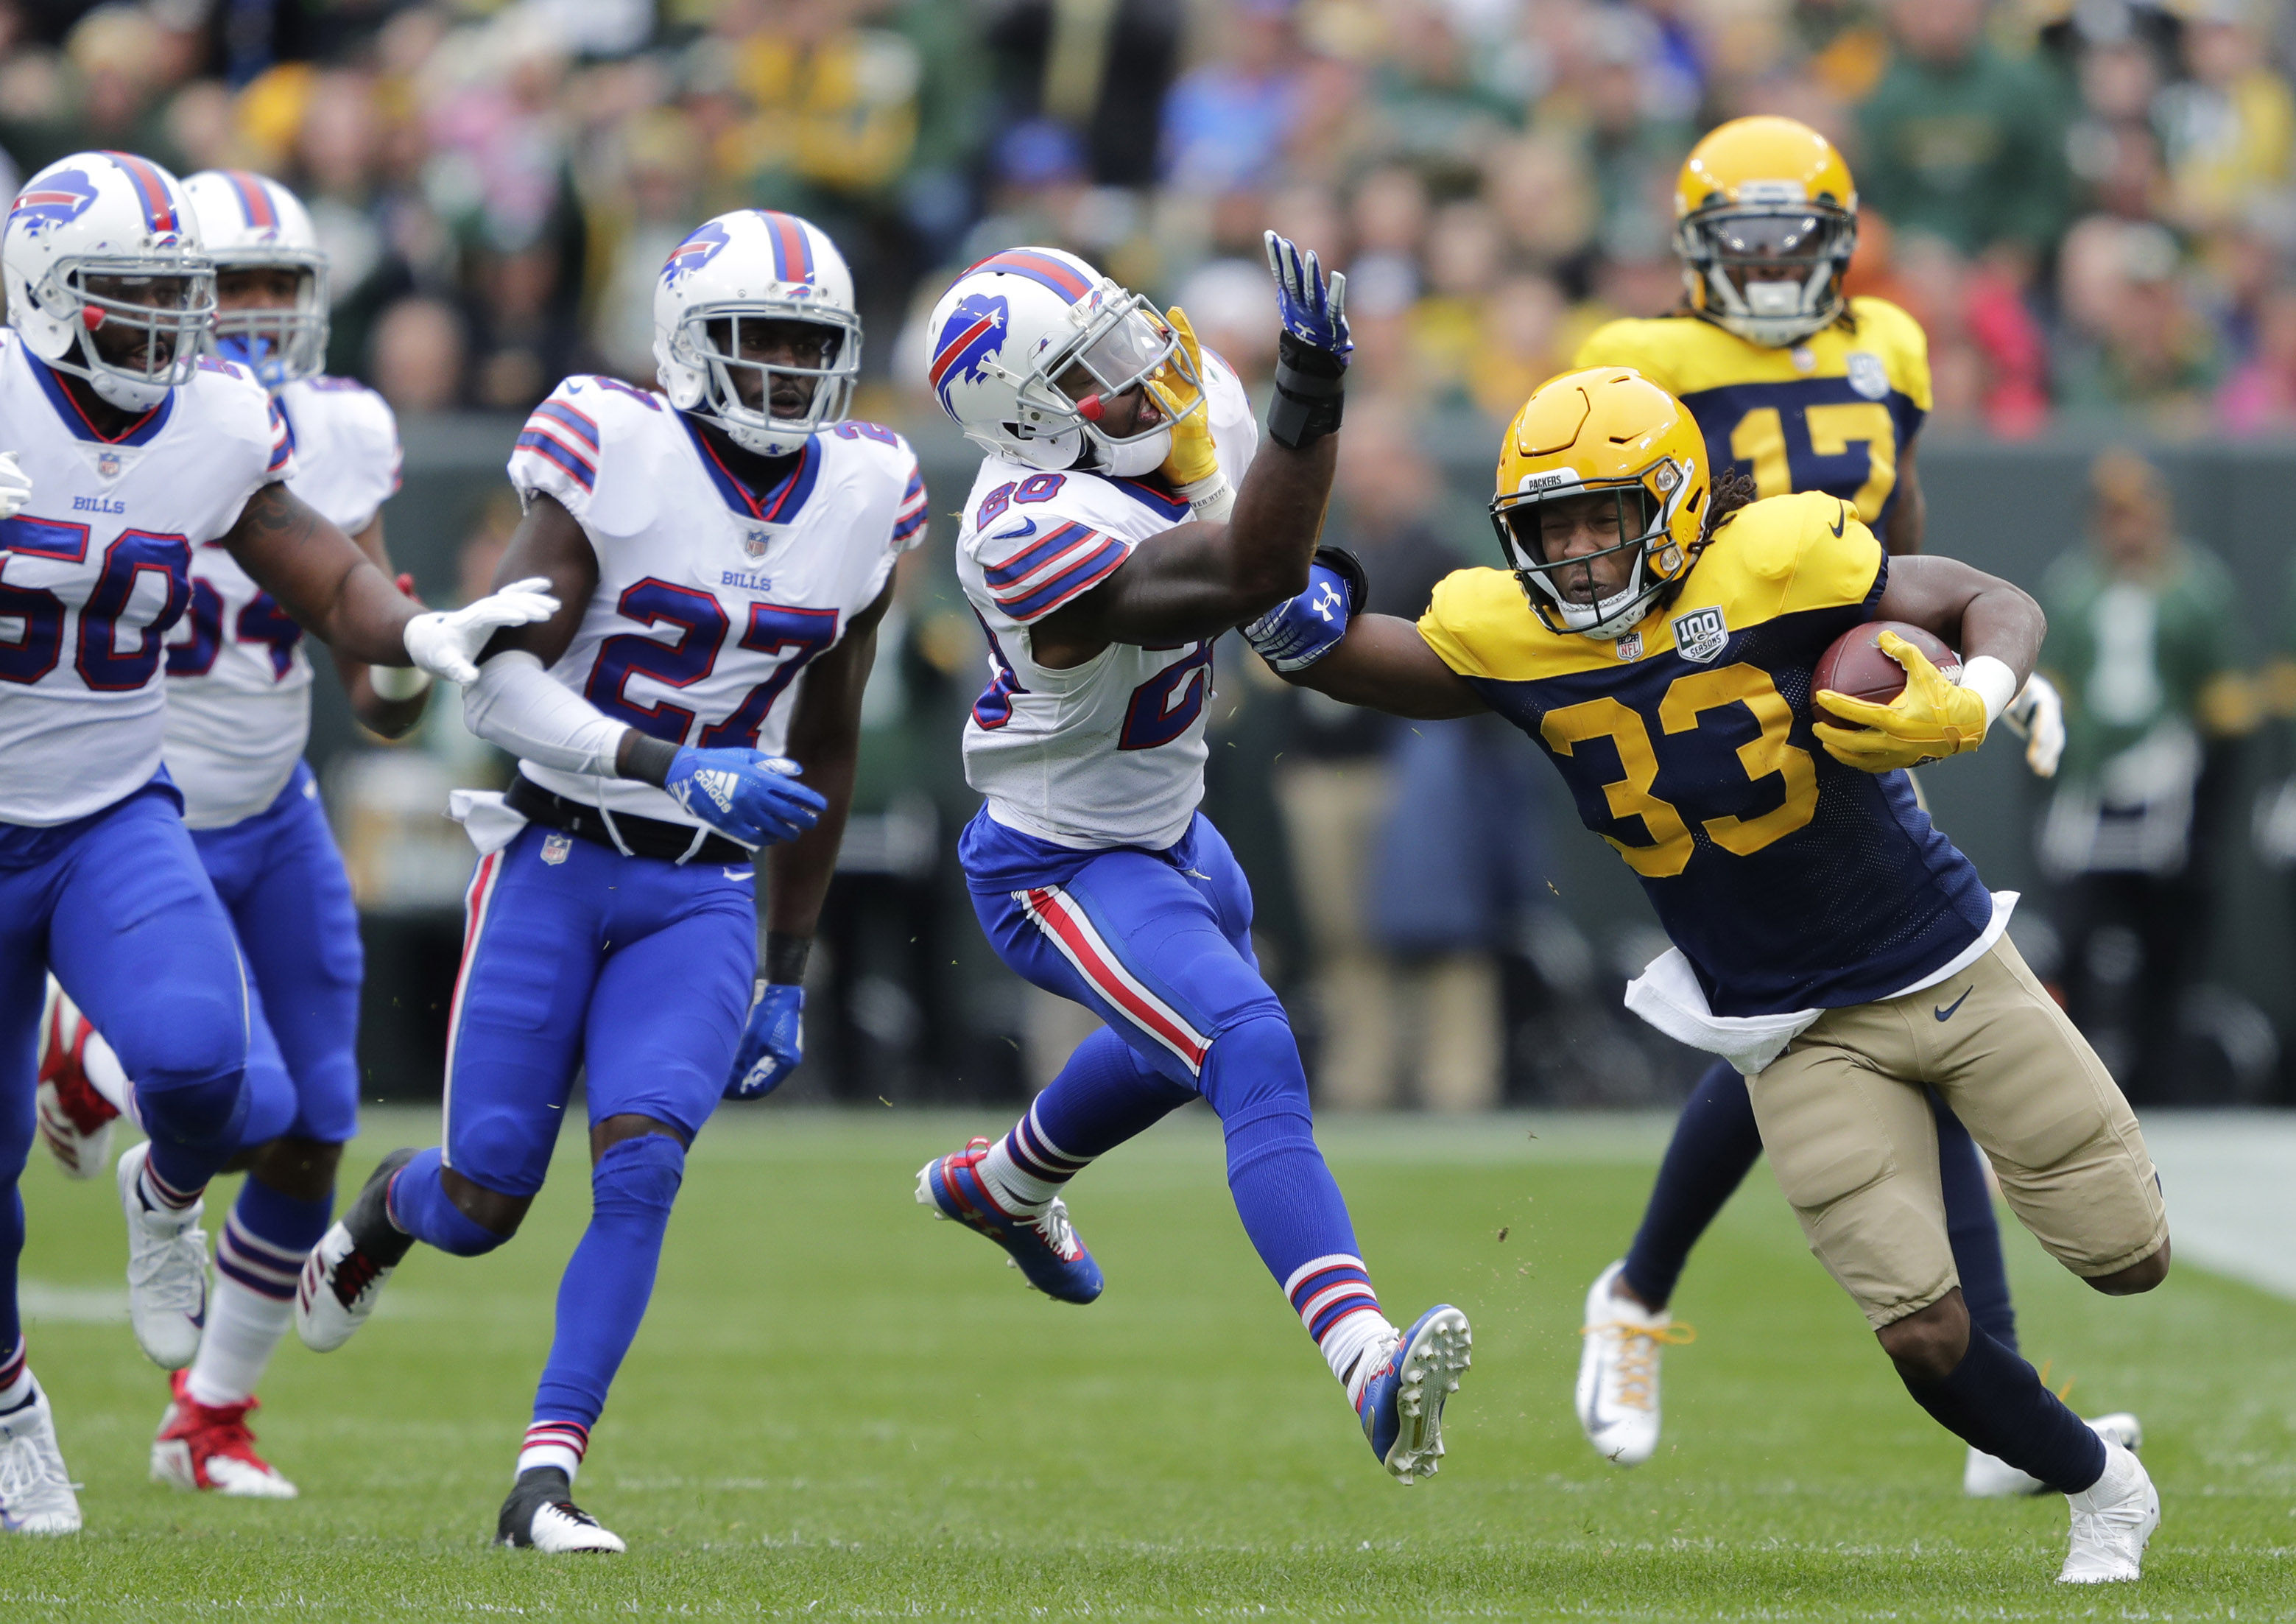 Sep 30, 2018; Green Bay, WI, USA; Green Bay Packers running back Aaron Jones (33) stiff arms Buffalo Bills defensive back Rafael Bush (20) during the first quarter at Lambeau Field. Dan Powers/Wisconsin via USA TODAY NETWORK